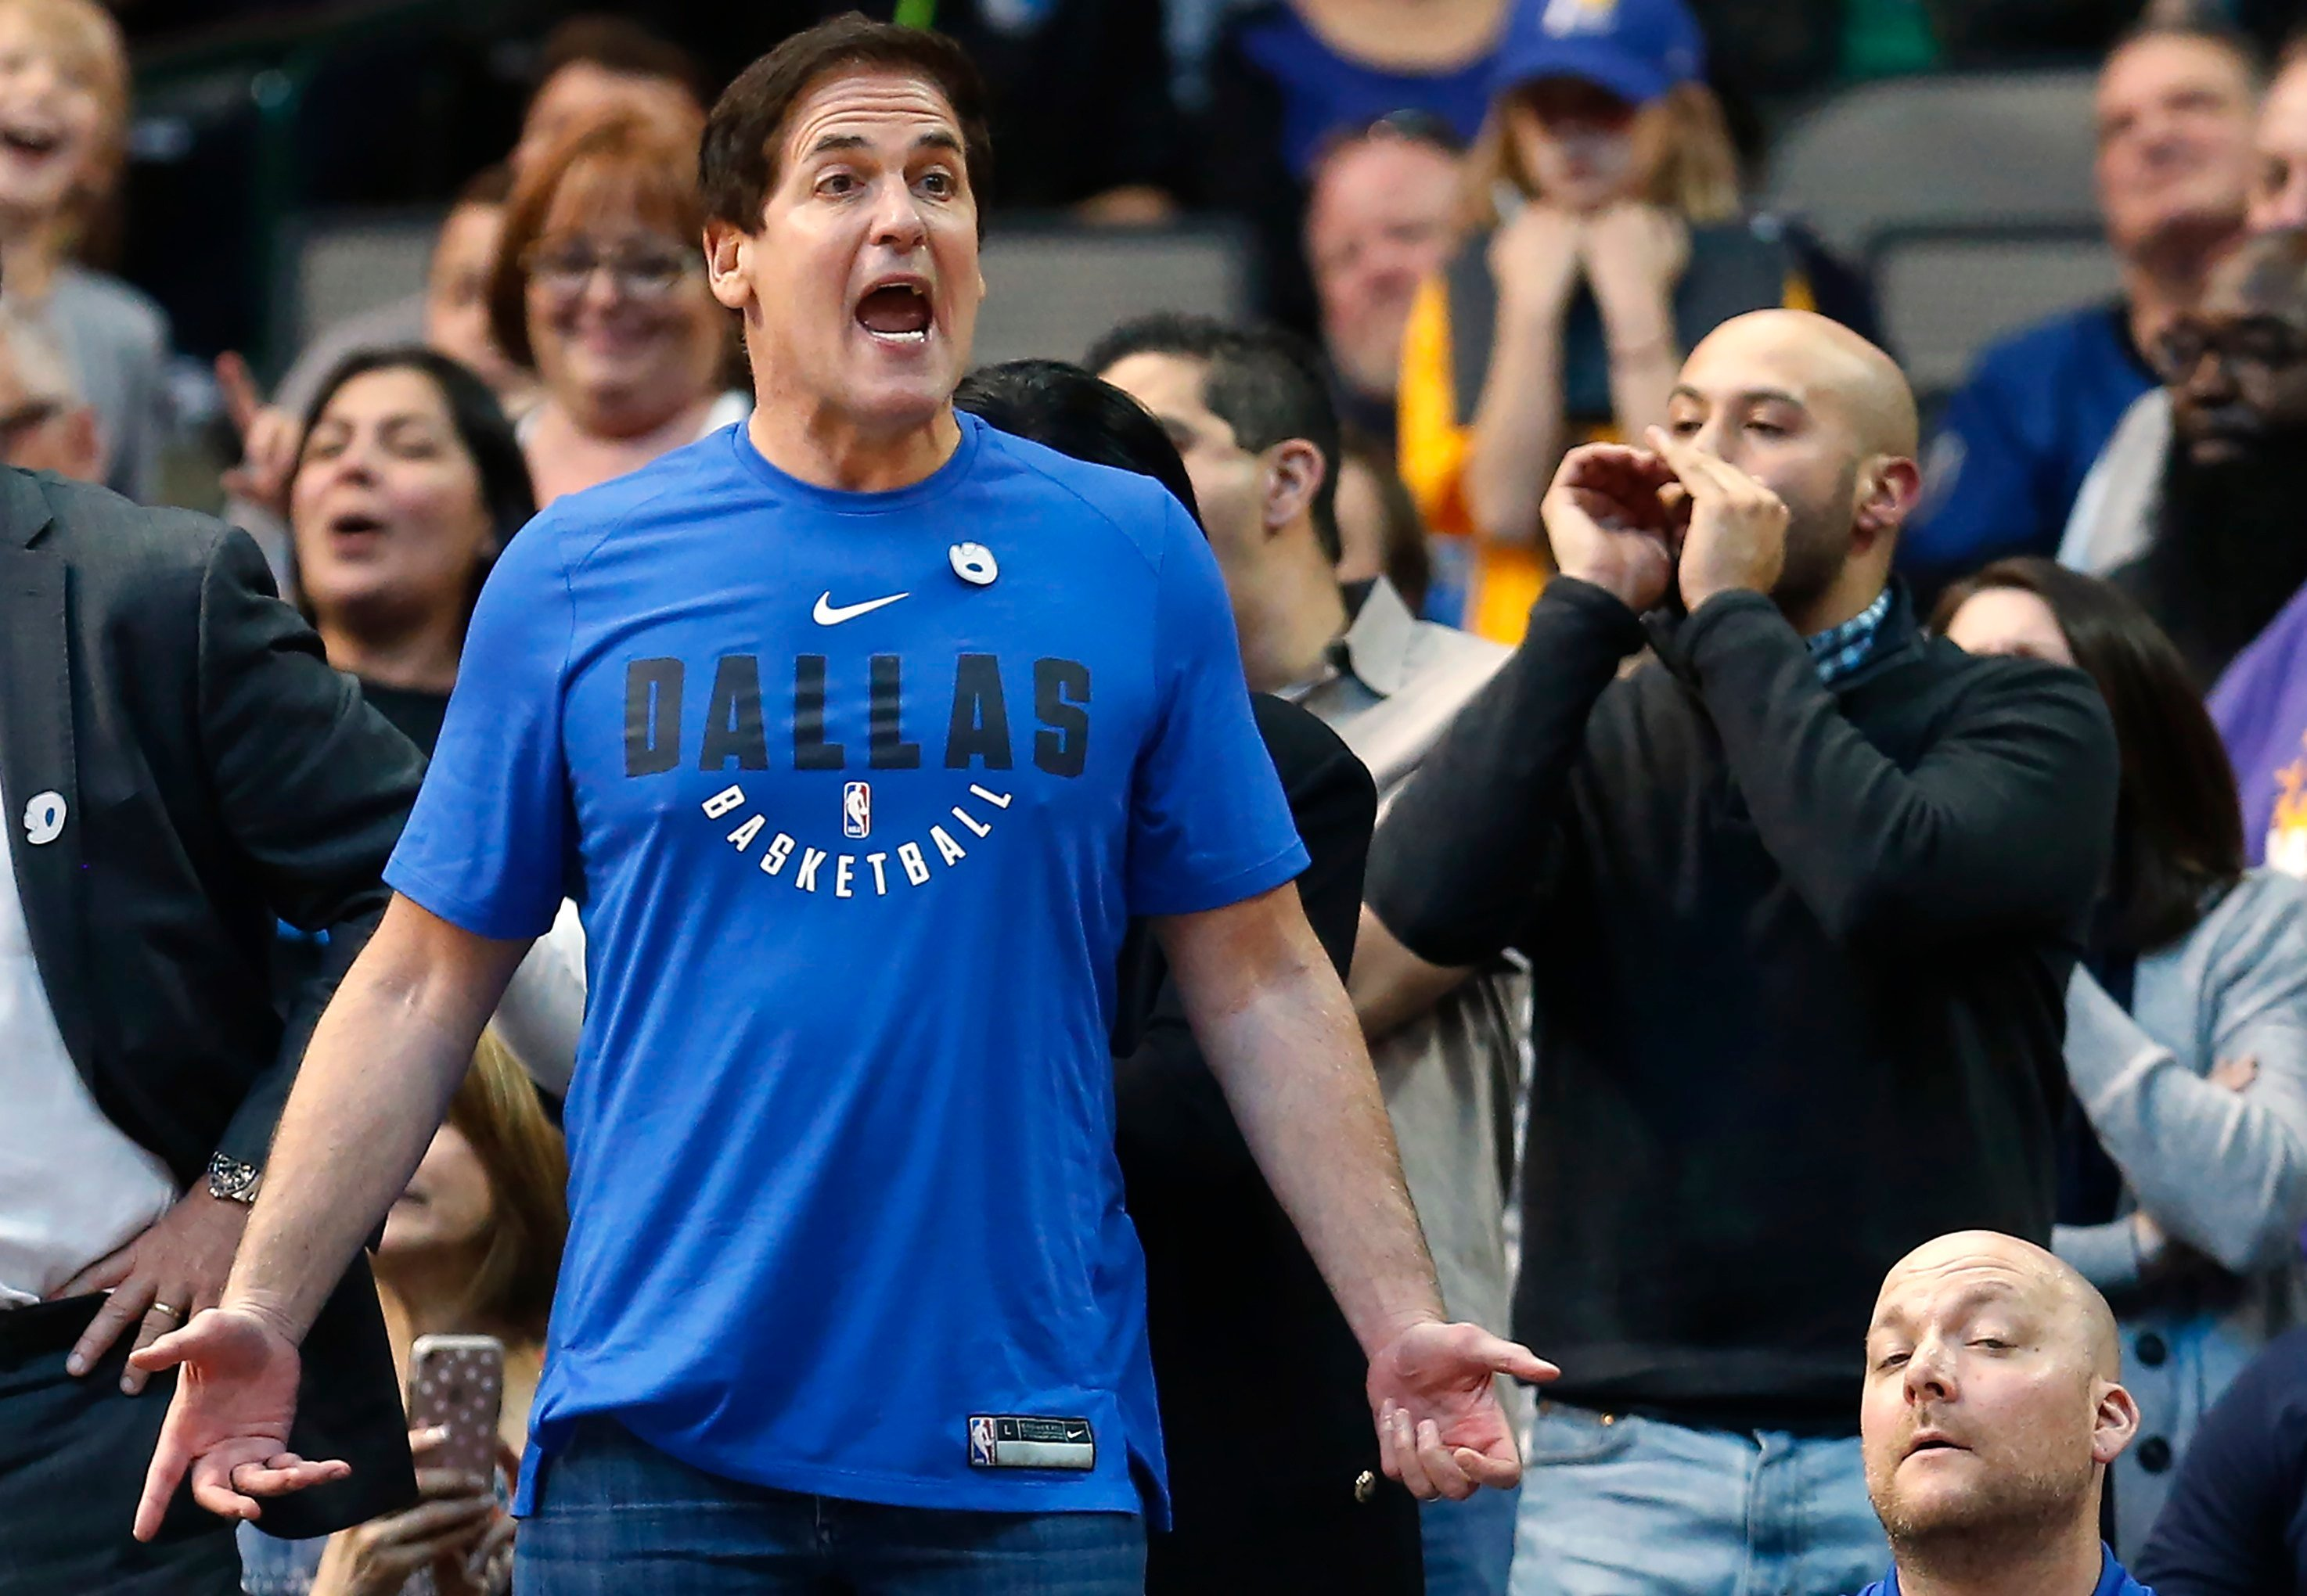 Dallas Mavericks owner Mark Cuban, left, reacts as his team plays the Indiana Pacers during the second half of an NBA basketball game, Monday, Feb. 26, 2018, in Dallas. Cuban is denying a 2011 allegation of sexual assault. (Source: AP Photo/Ron Jenkins)